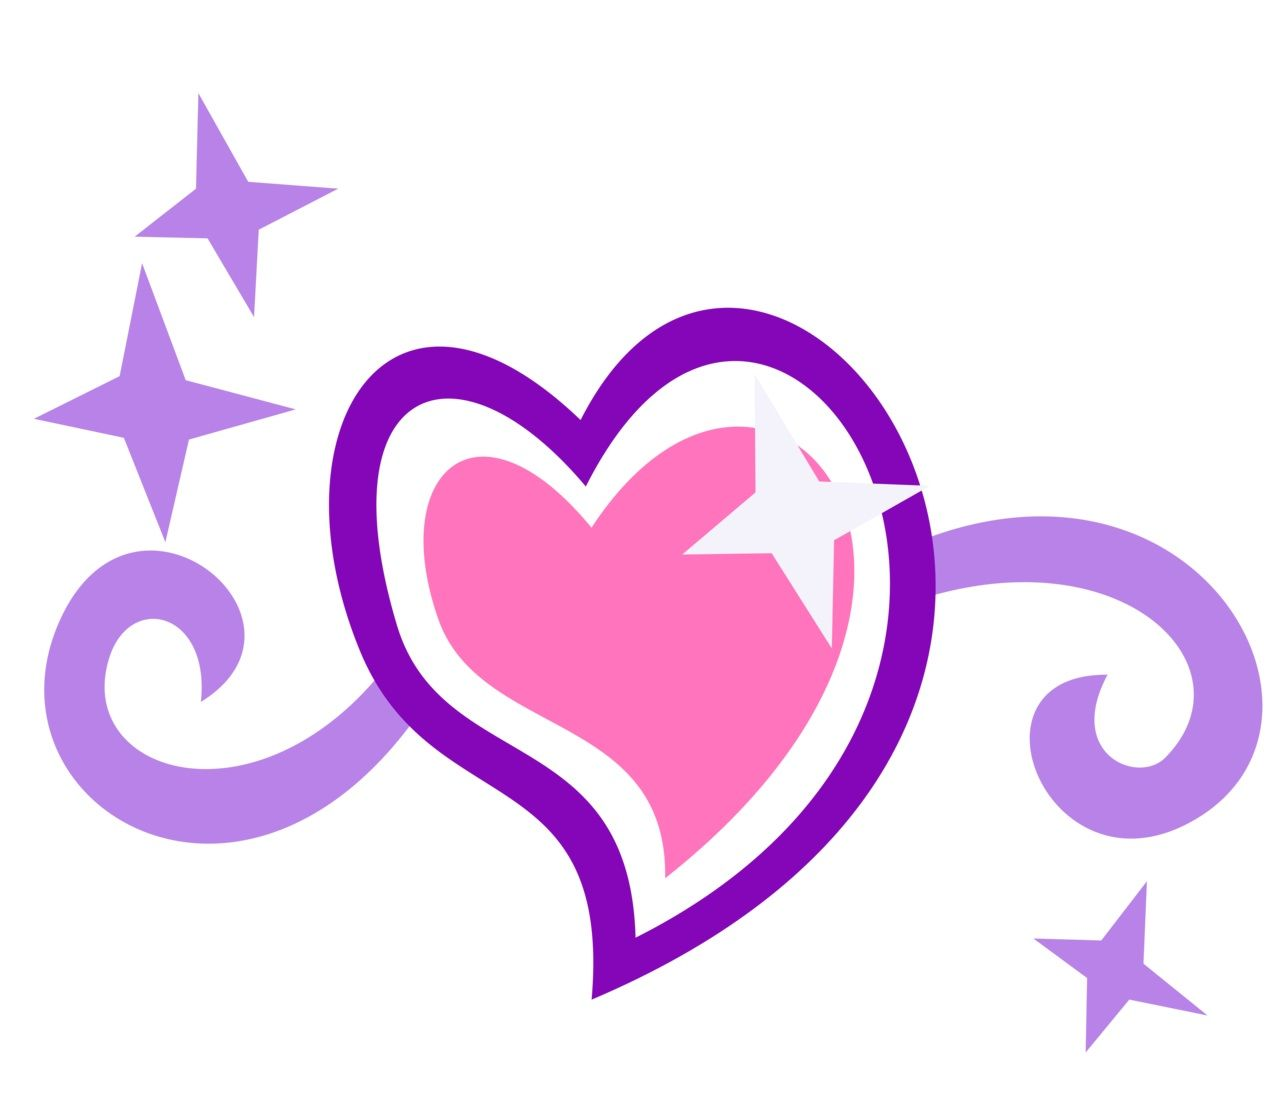 Sweetie Belle S Cutie Mark Comment Which One You Think It Is Mlp Cutie Marks Pony Rides Sweetie Belle My little pony mlp scootaloo ii g3 core 1 pose 2008 favorite friends wave 3. mlp cutie marks pony rides sweetie belle